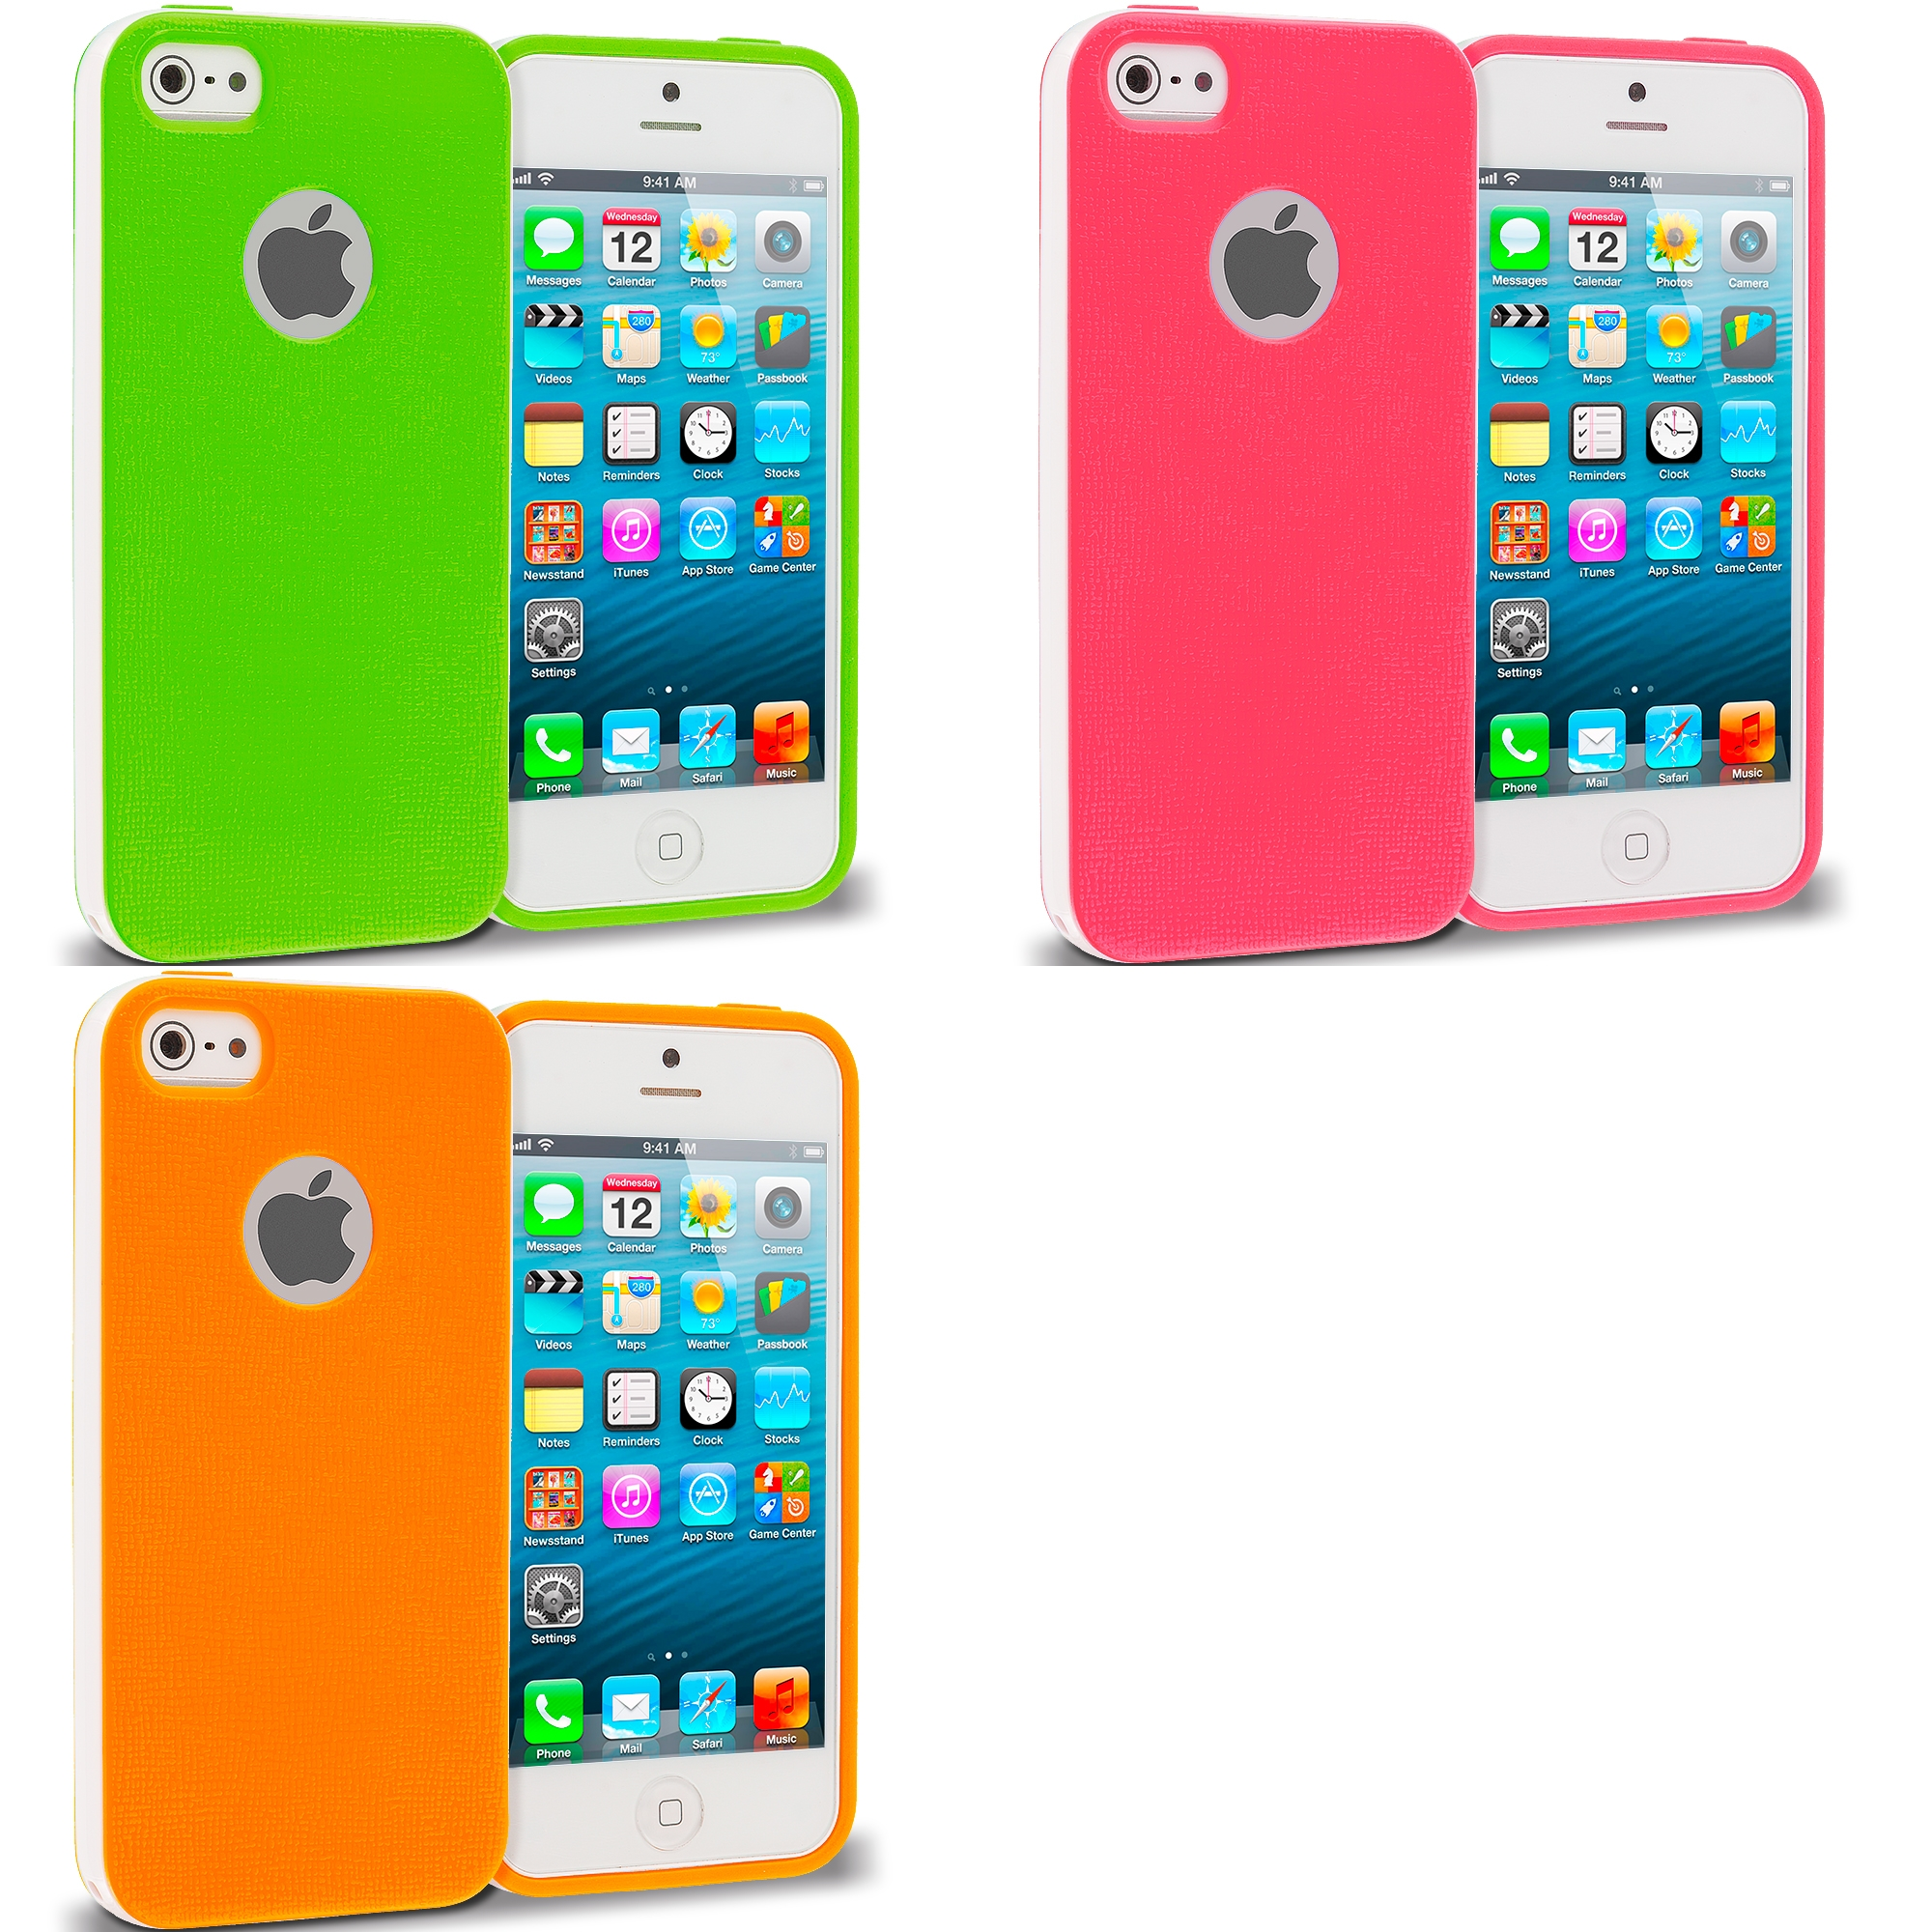 Apple iPhone 5/5S/SE Combo Pack : Green Hybrid TPU Bumper Case Cover